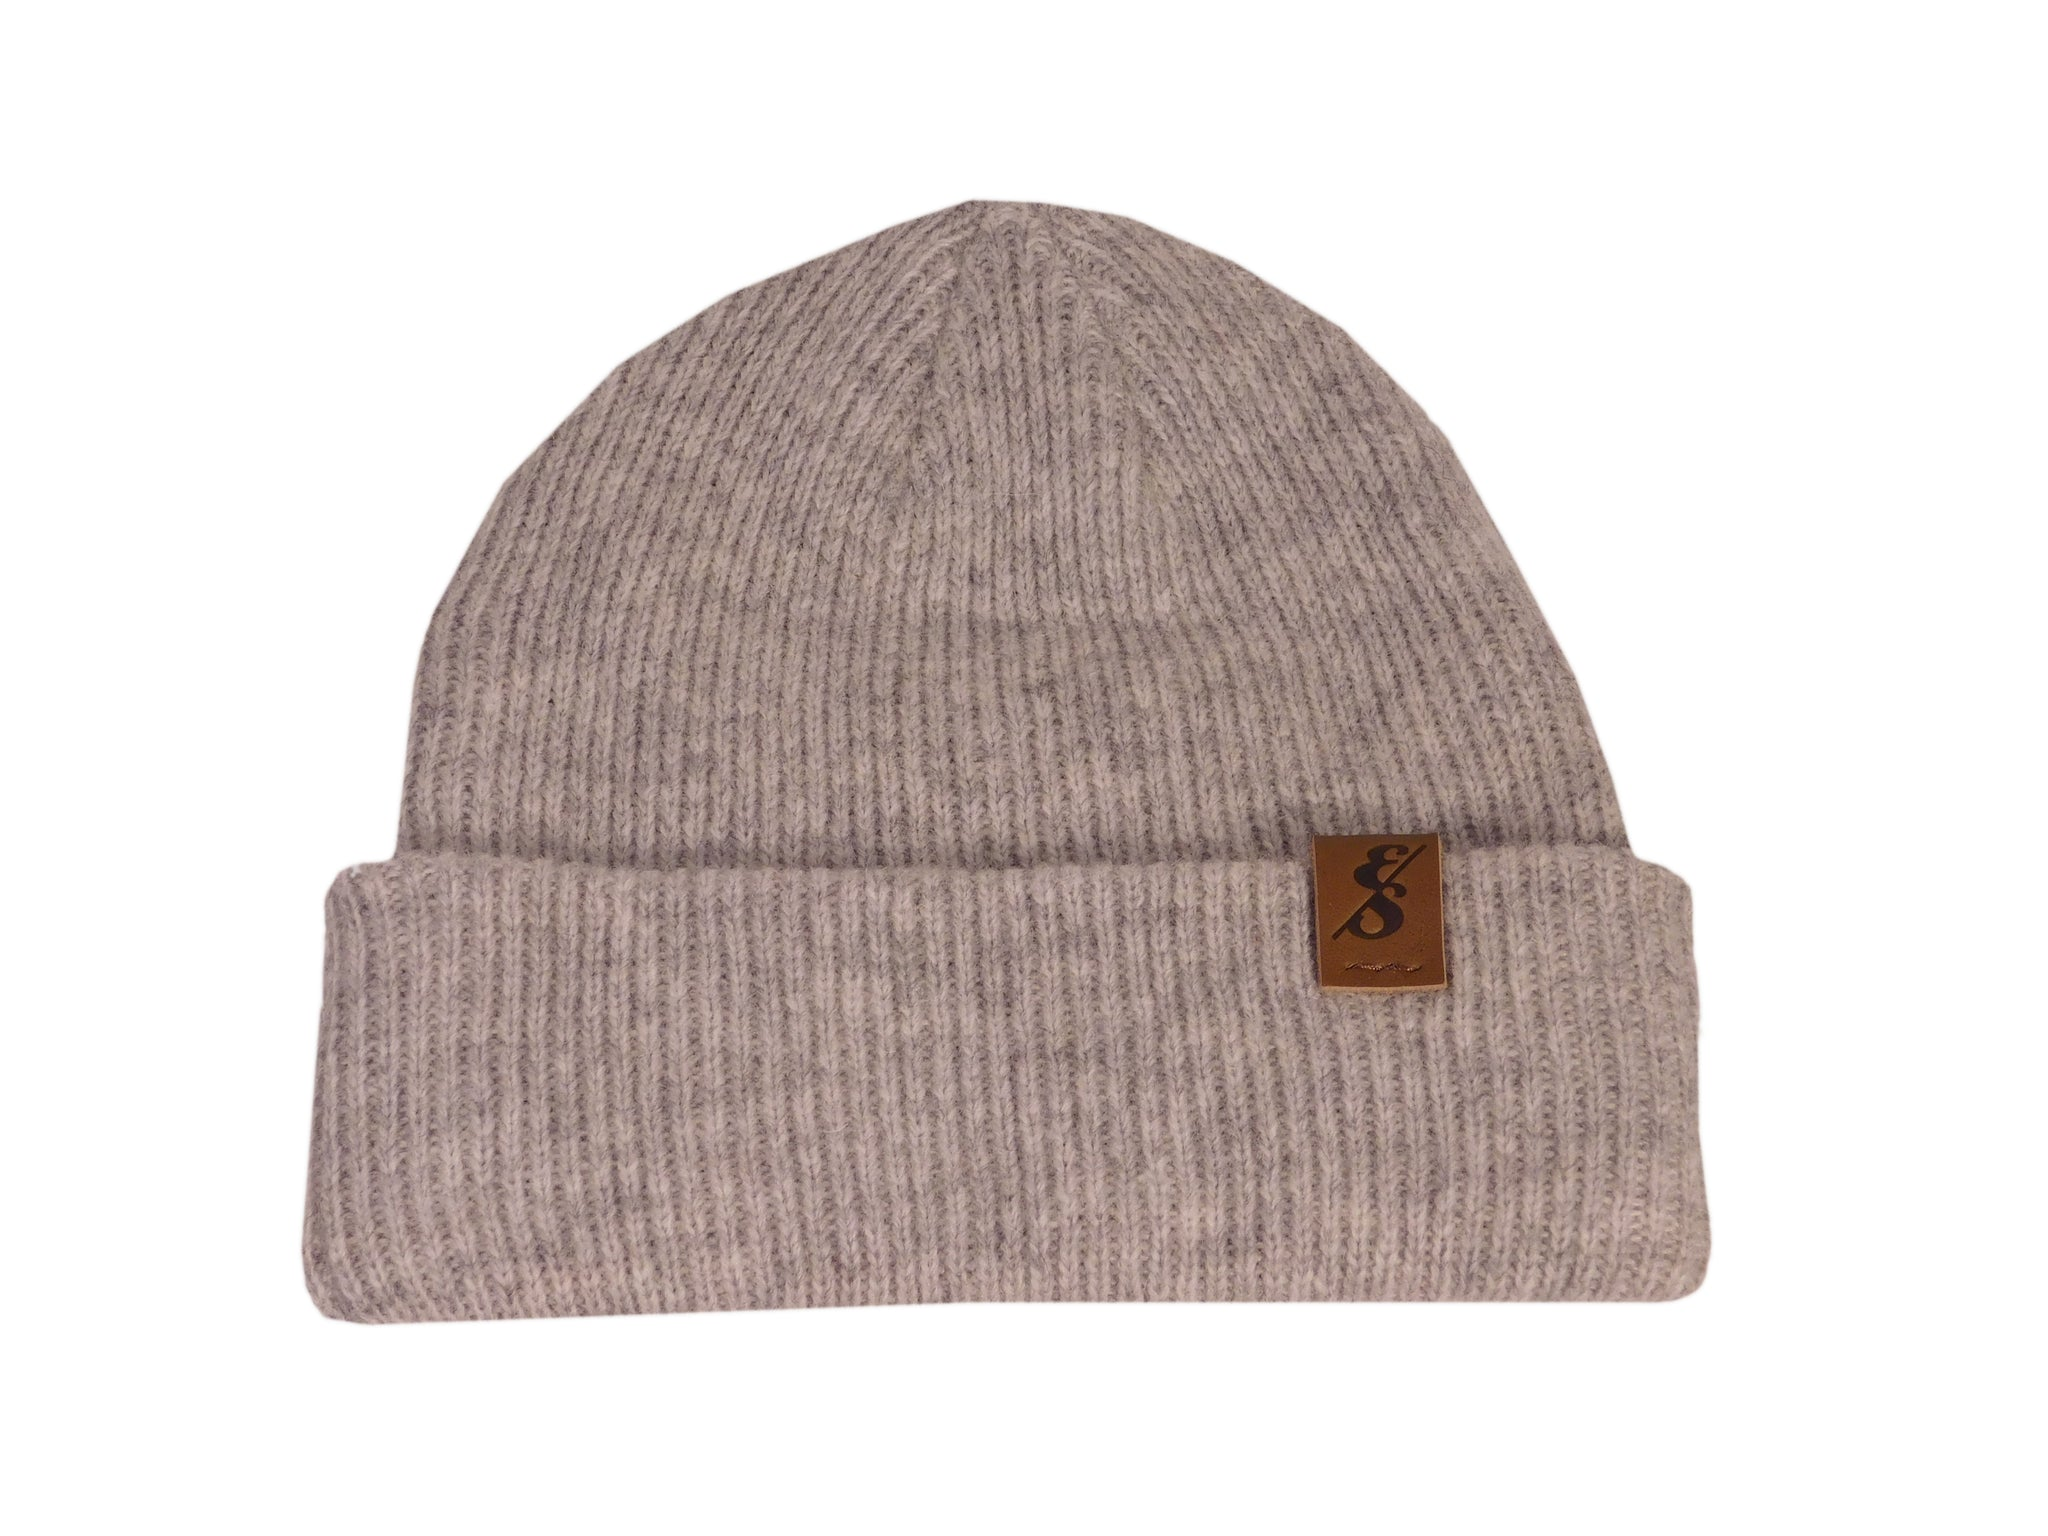 No. 335 Heather Grey Merino Wool Beanie